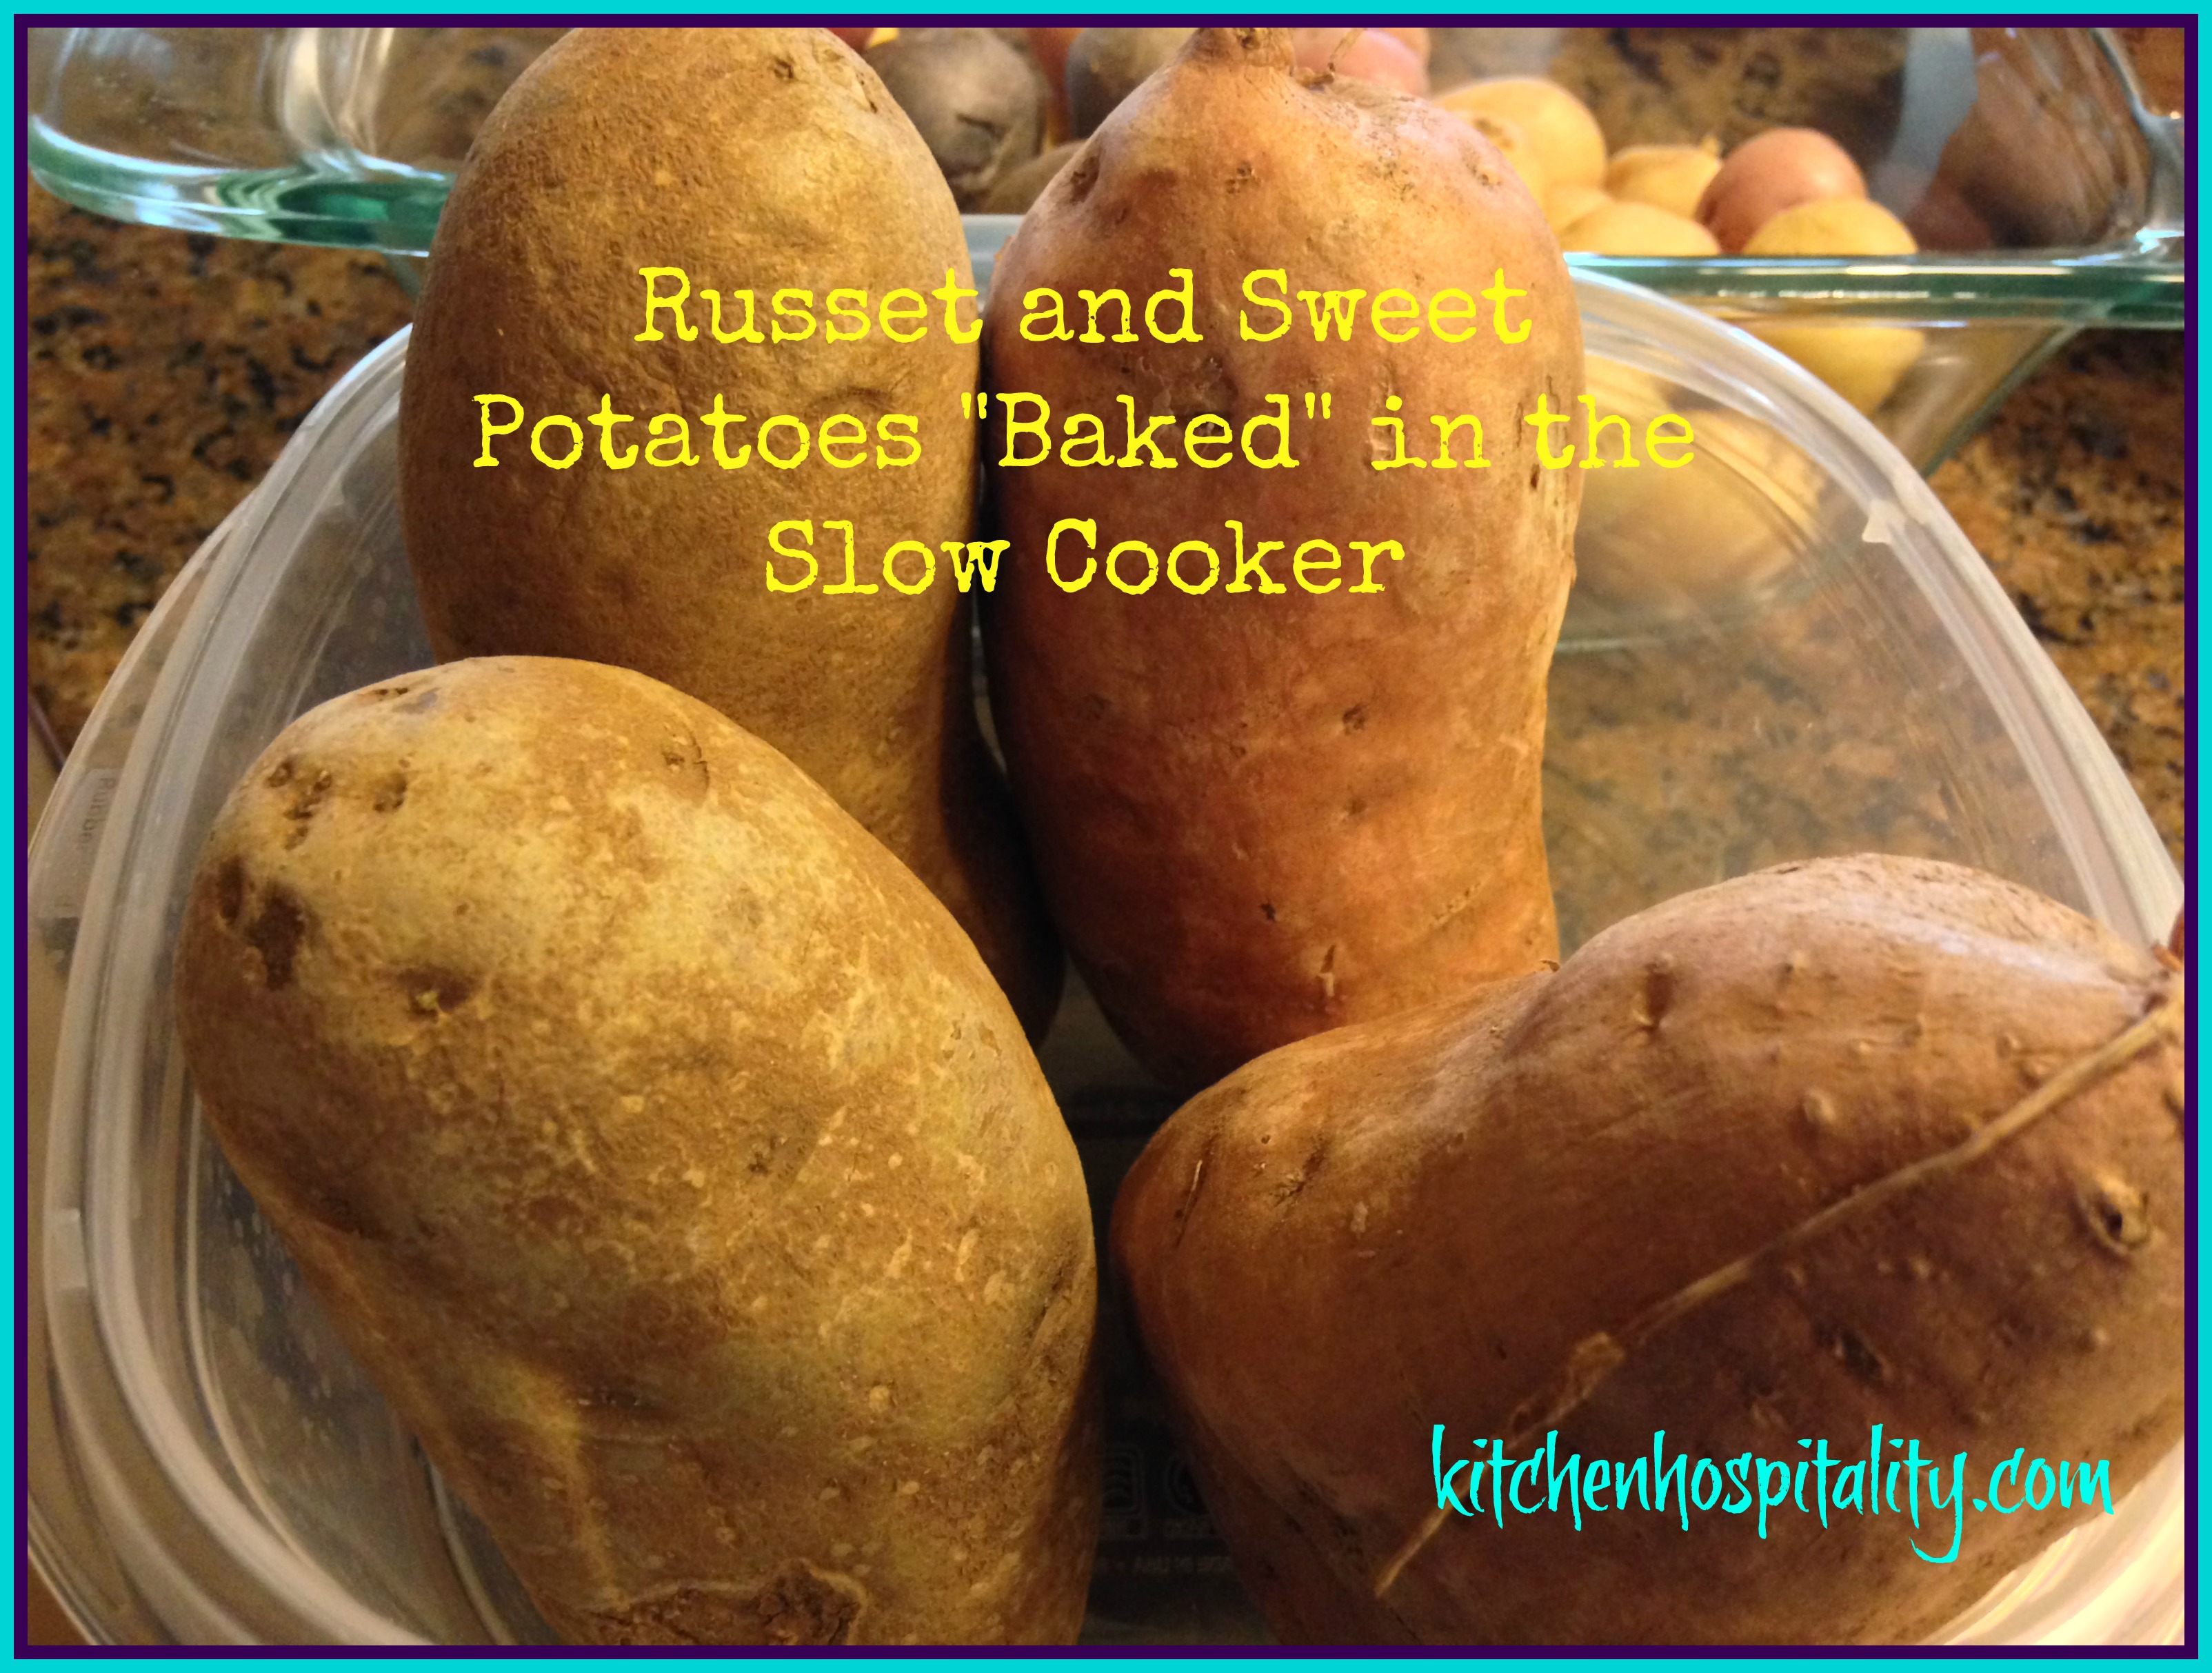 Slow Cooker Russet and Sweet Potatoes